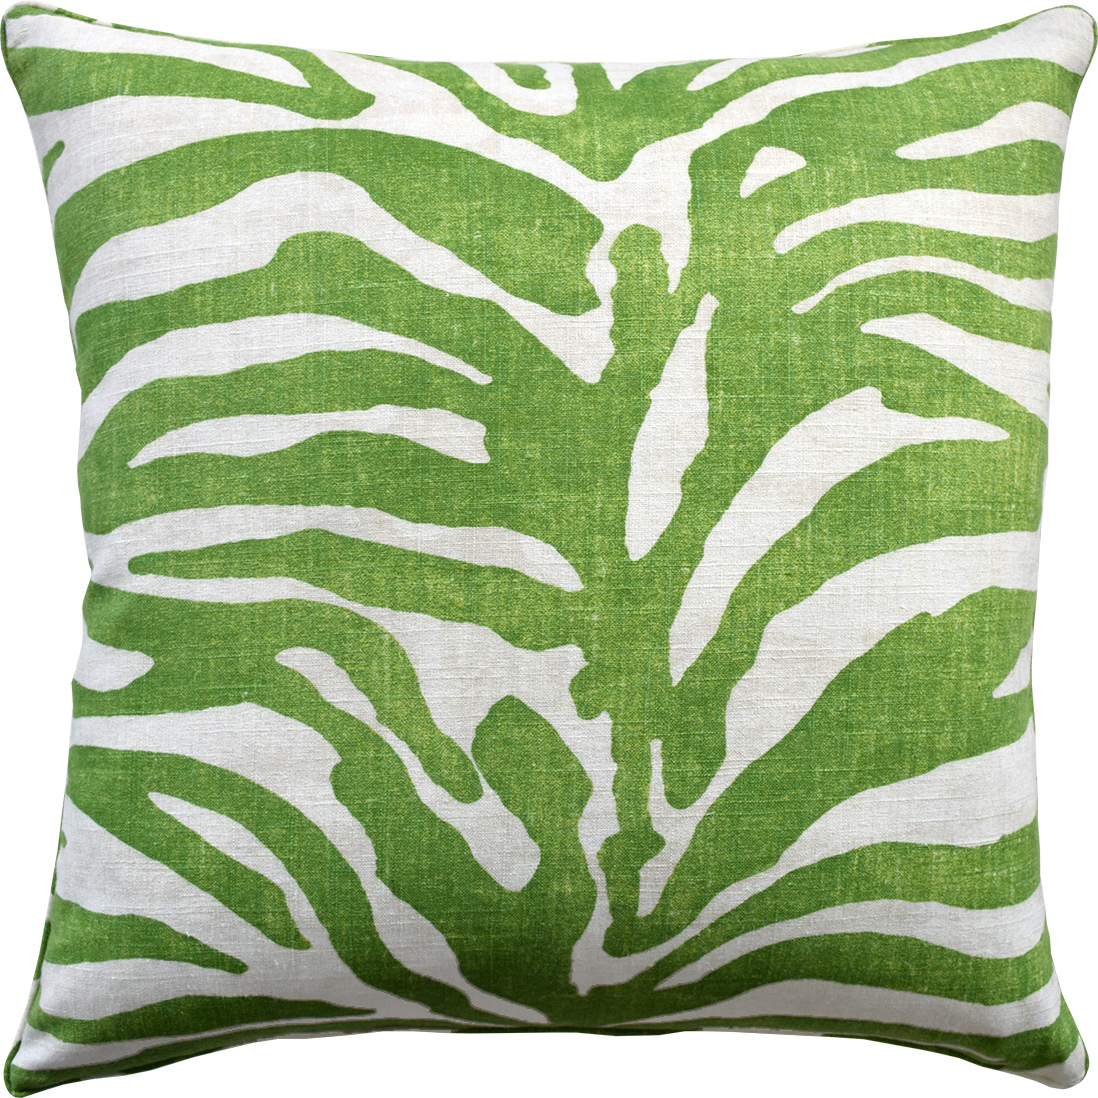 Serengeti Green Pillow